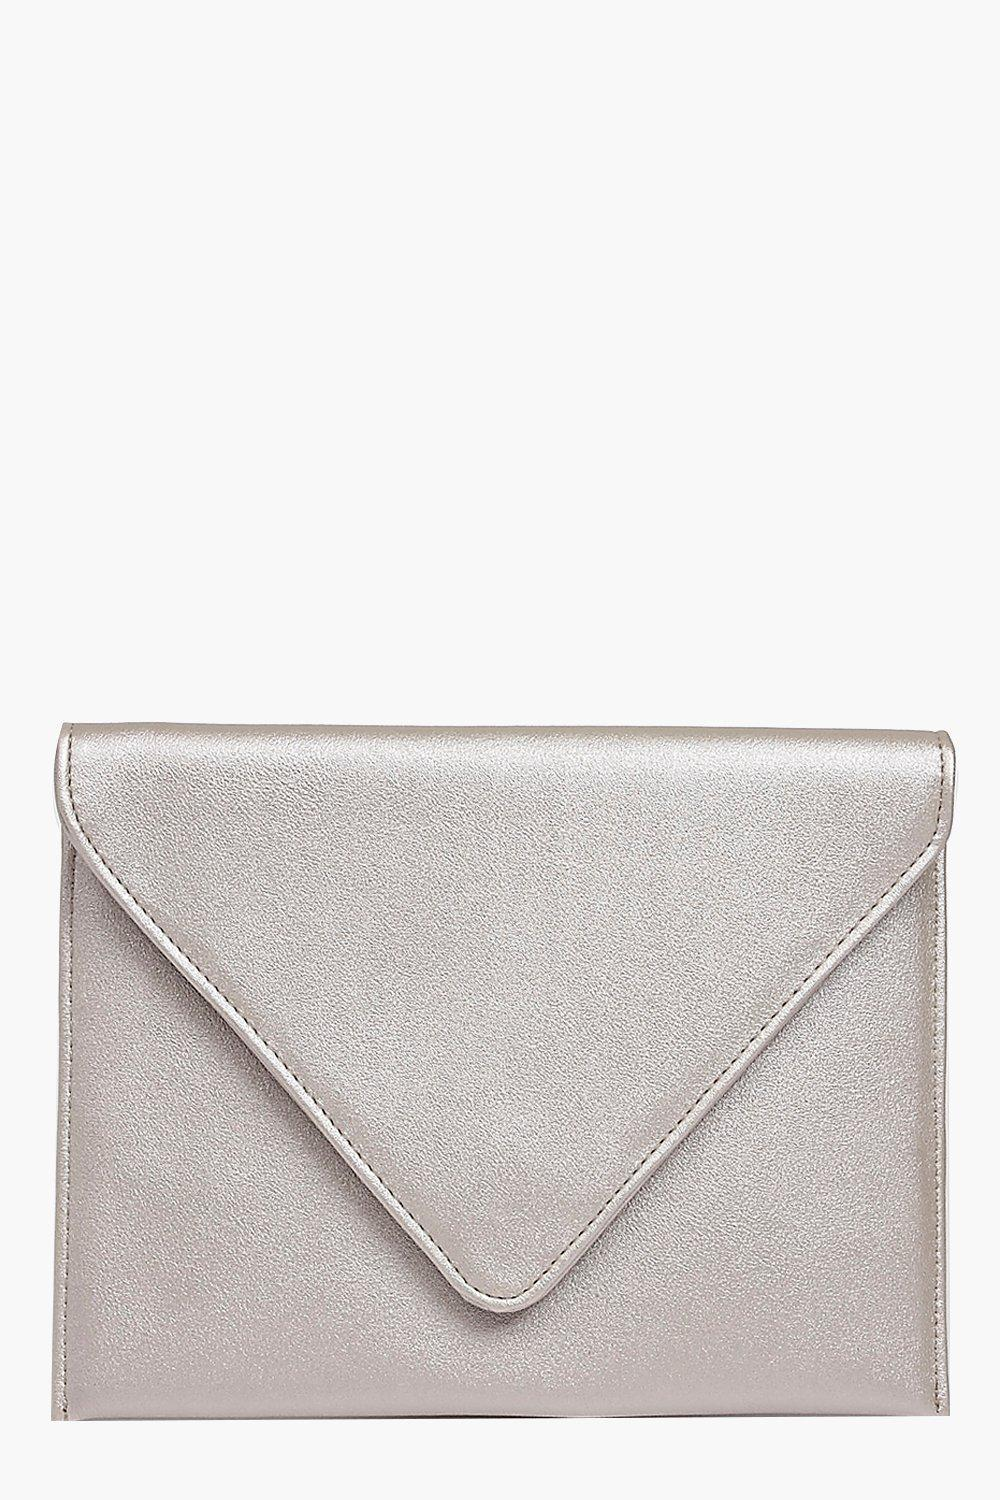 Fold Over Clutch Bag Silver - predominant colour: silver; occasions: evening; type of pattern: standard; style: clutch; length: hand carry; size: standard; material: faux leather; pattern: plain; finish: metallic; season: a/w 2016; wardrobe: event